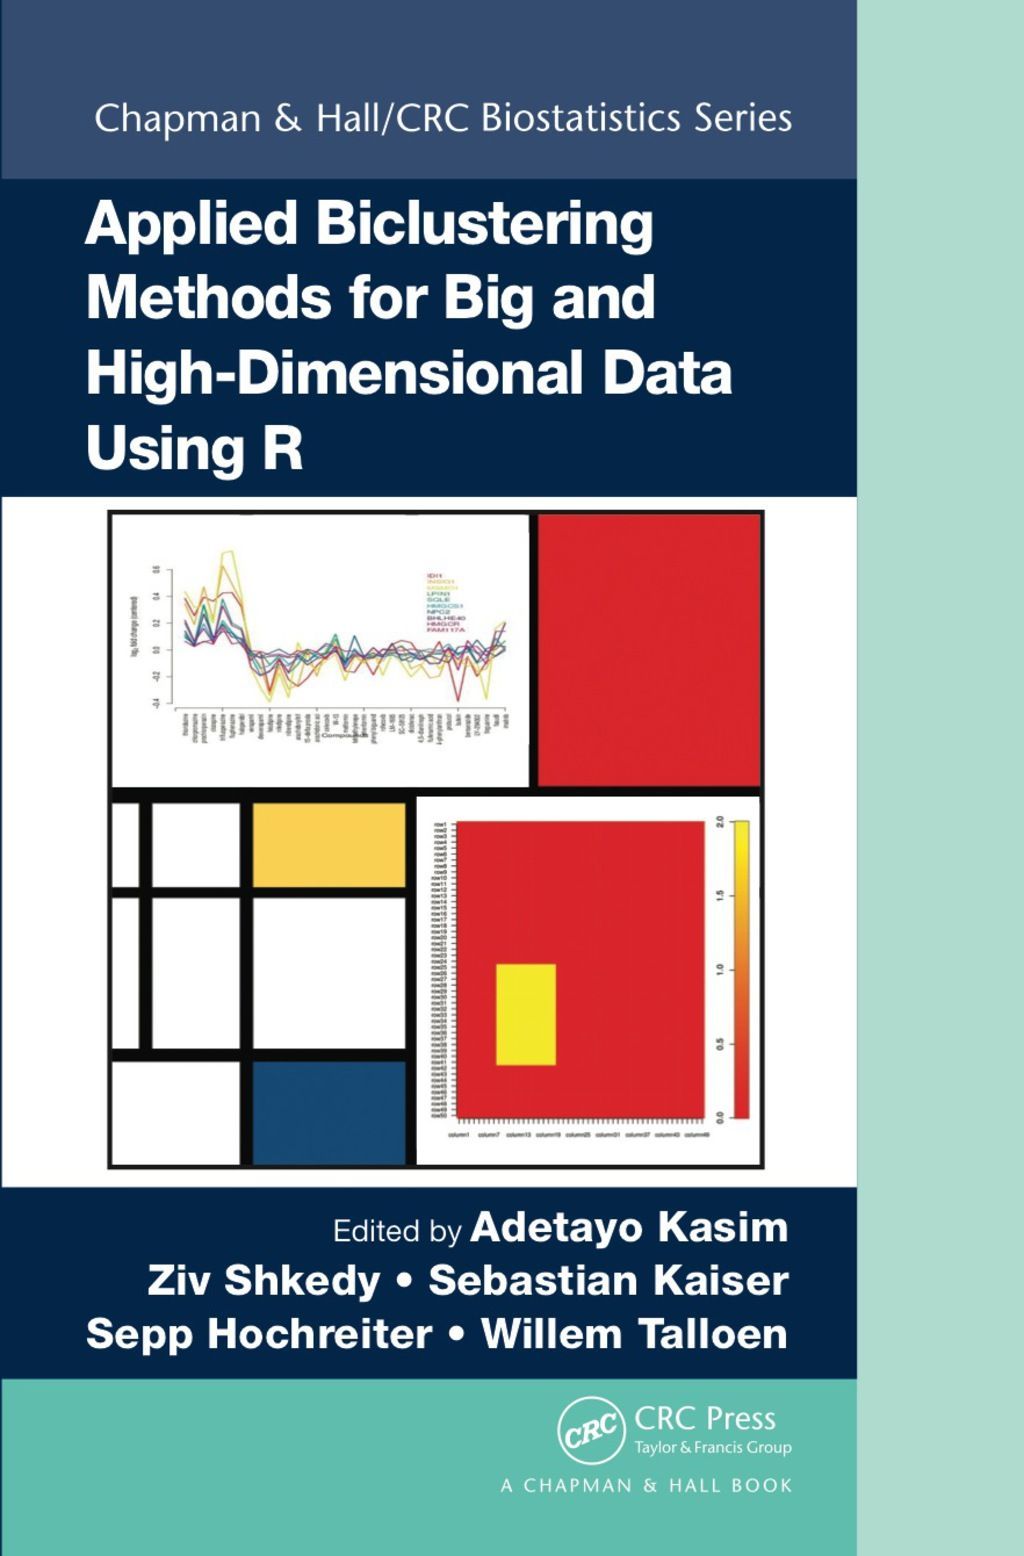 Applied Biclustering Methods for Big and HighDimensional